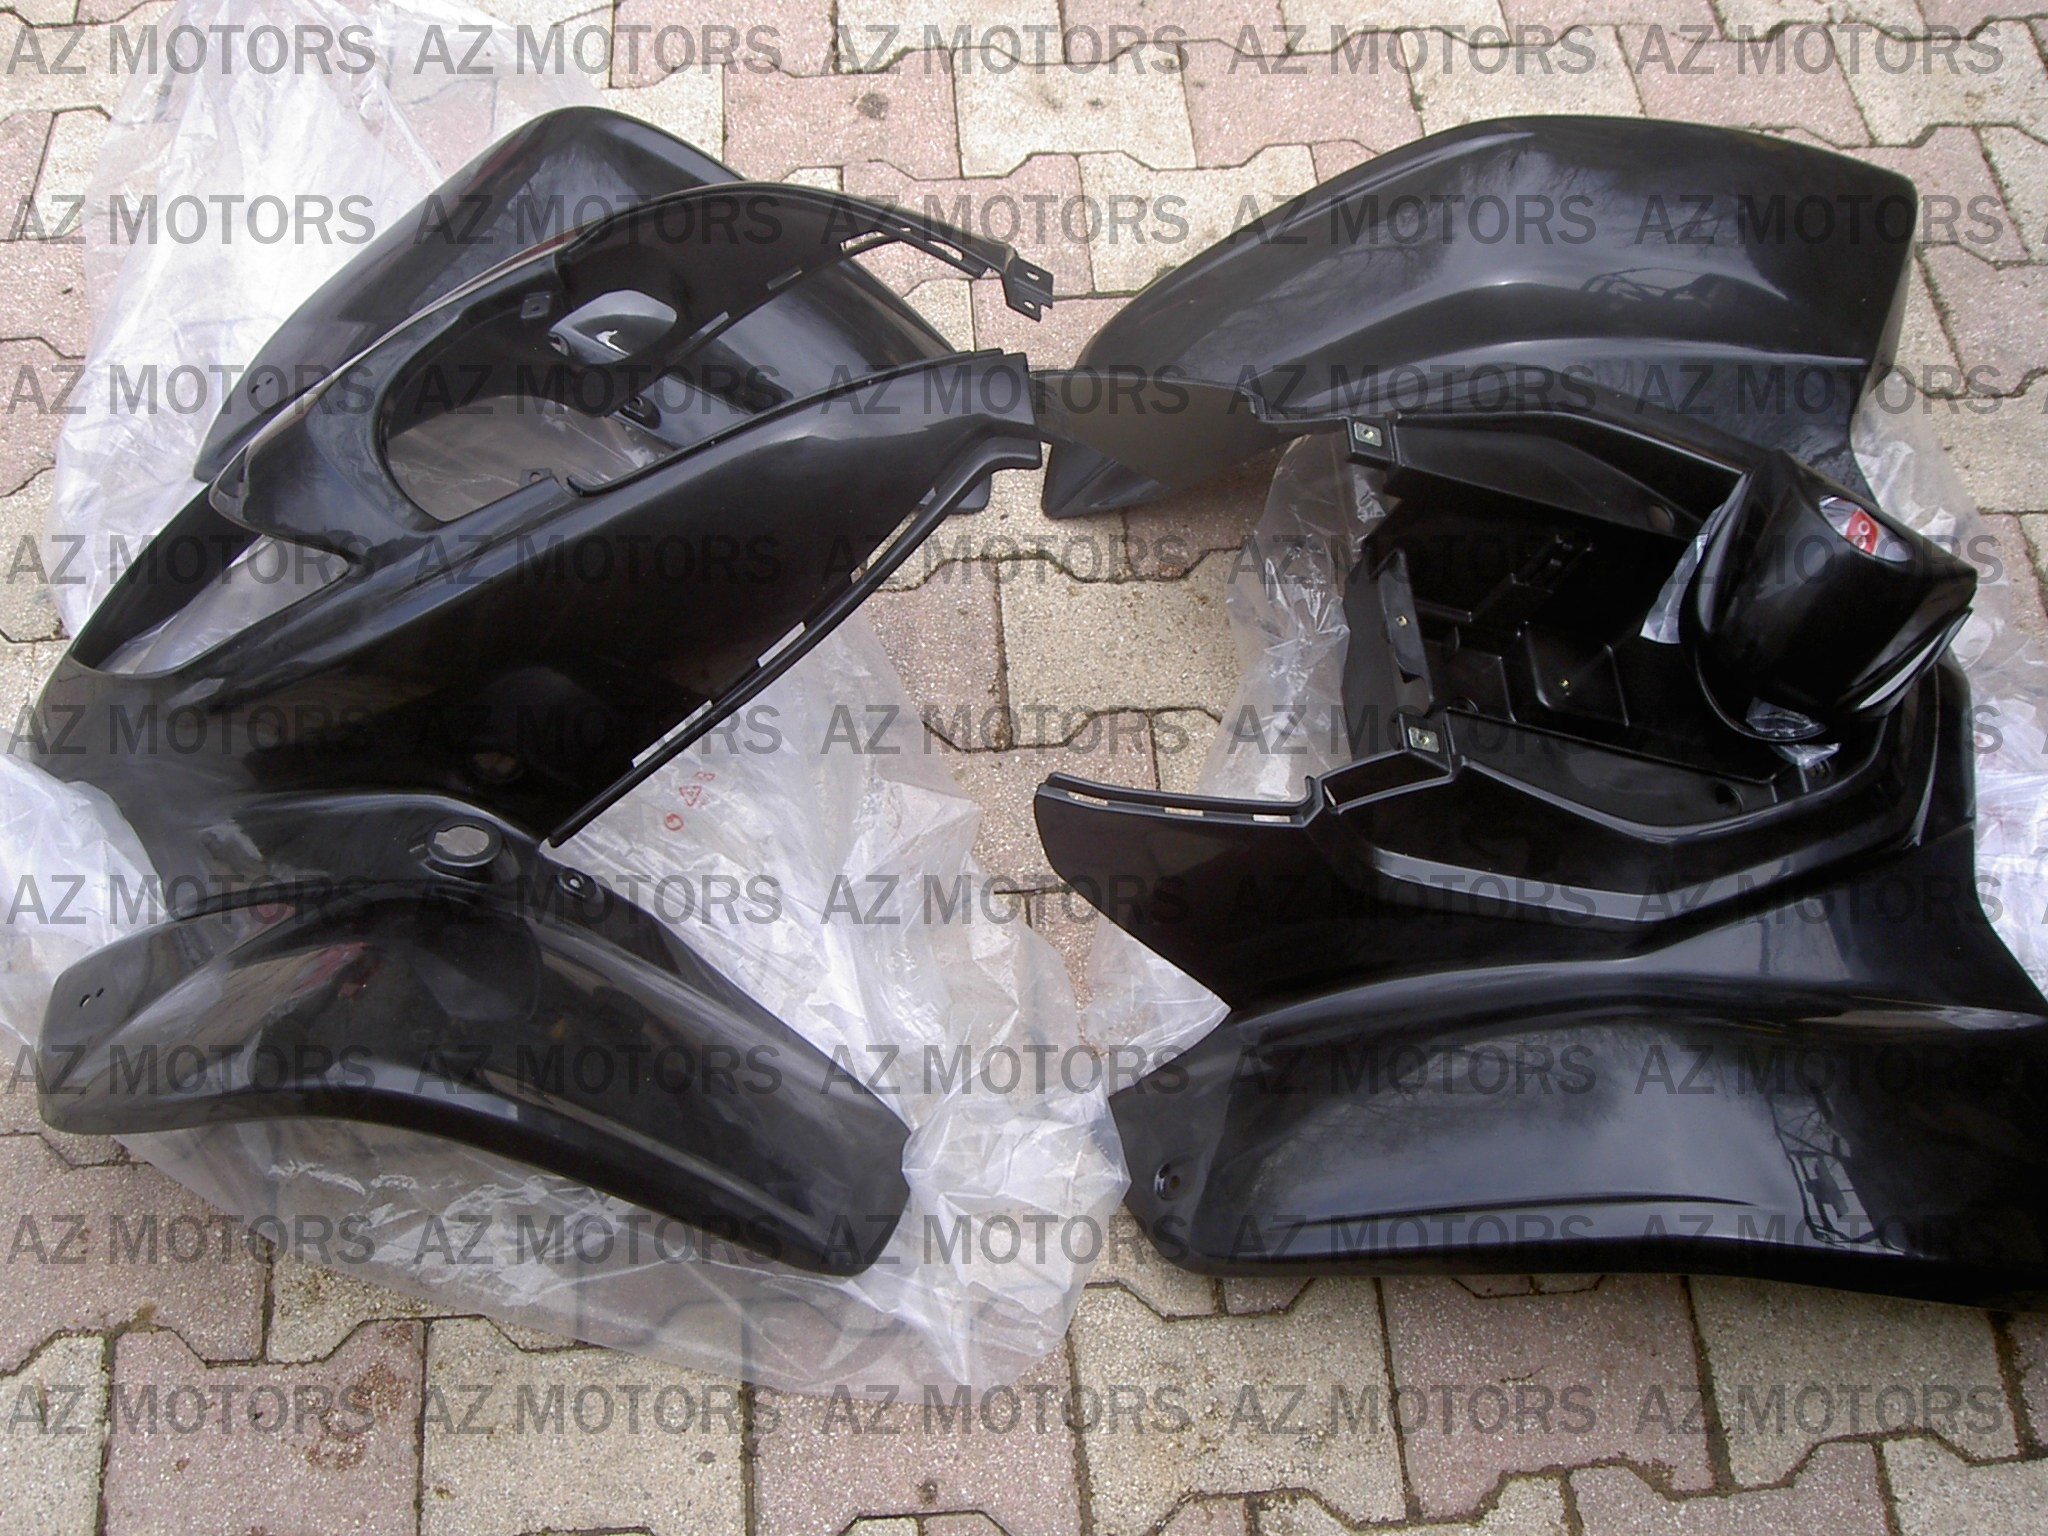 LOT DE CARENAGES KYMCO 250 KXR/MAXXER 